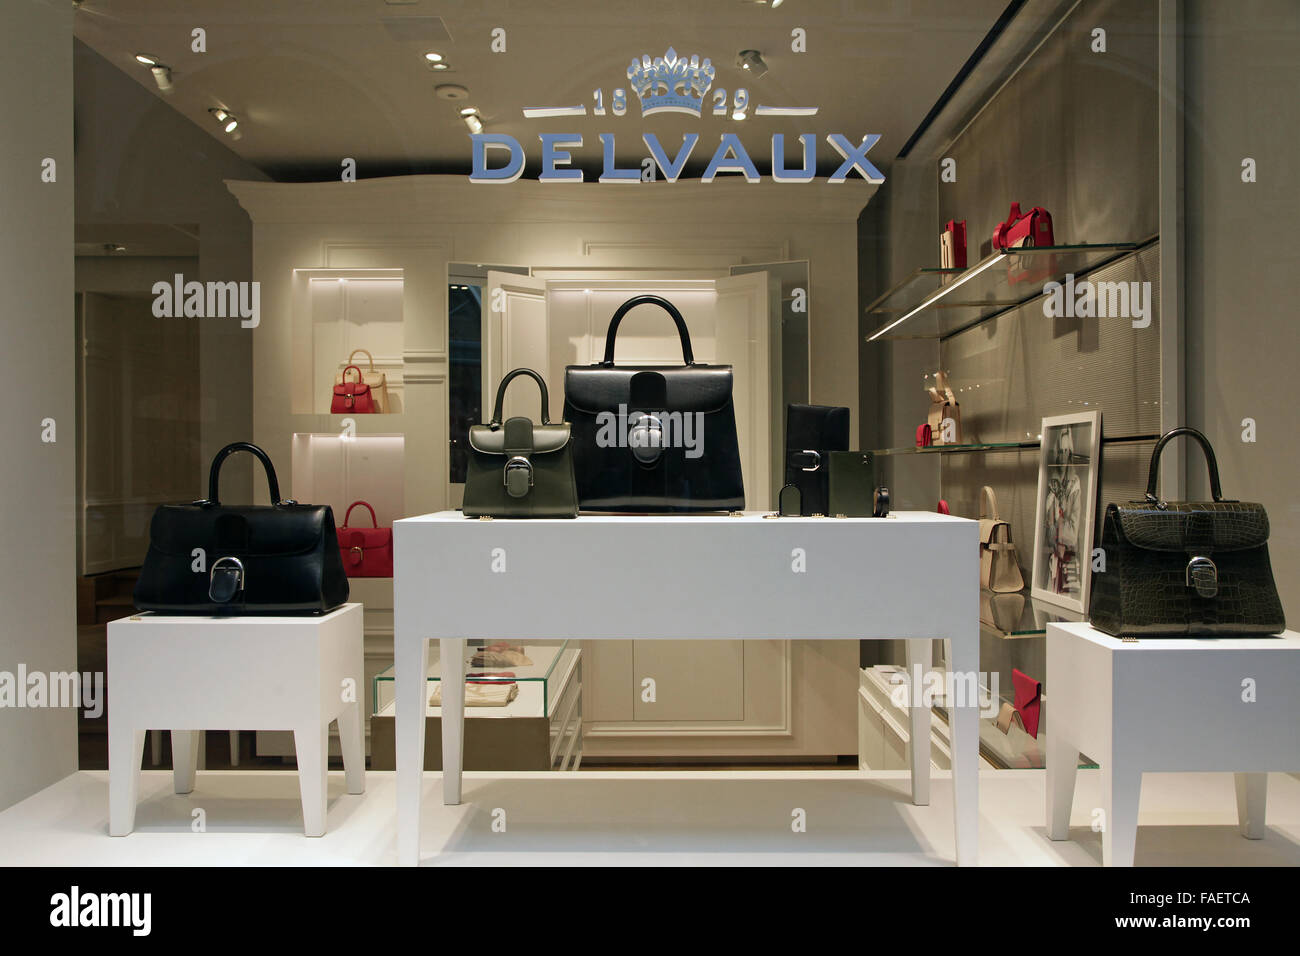 Delvaux leather luxury house since 1829. La Maison Delvaux, the oldest fine leather luxury goods company in the Stock Photo